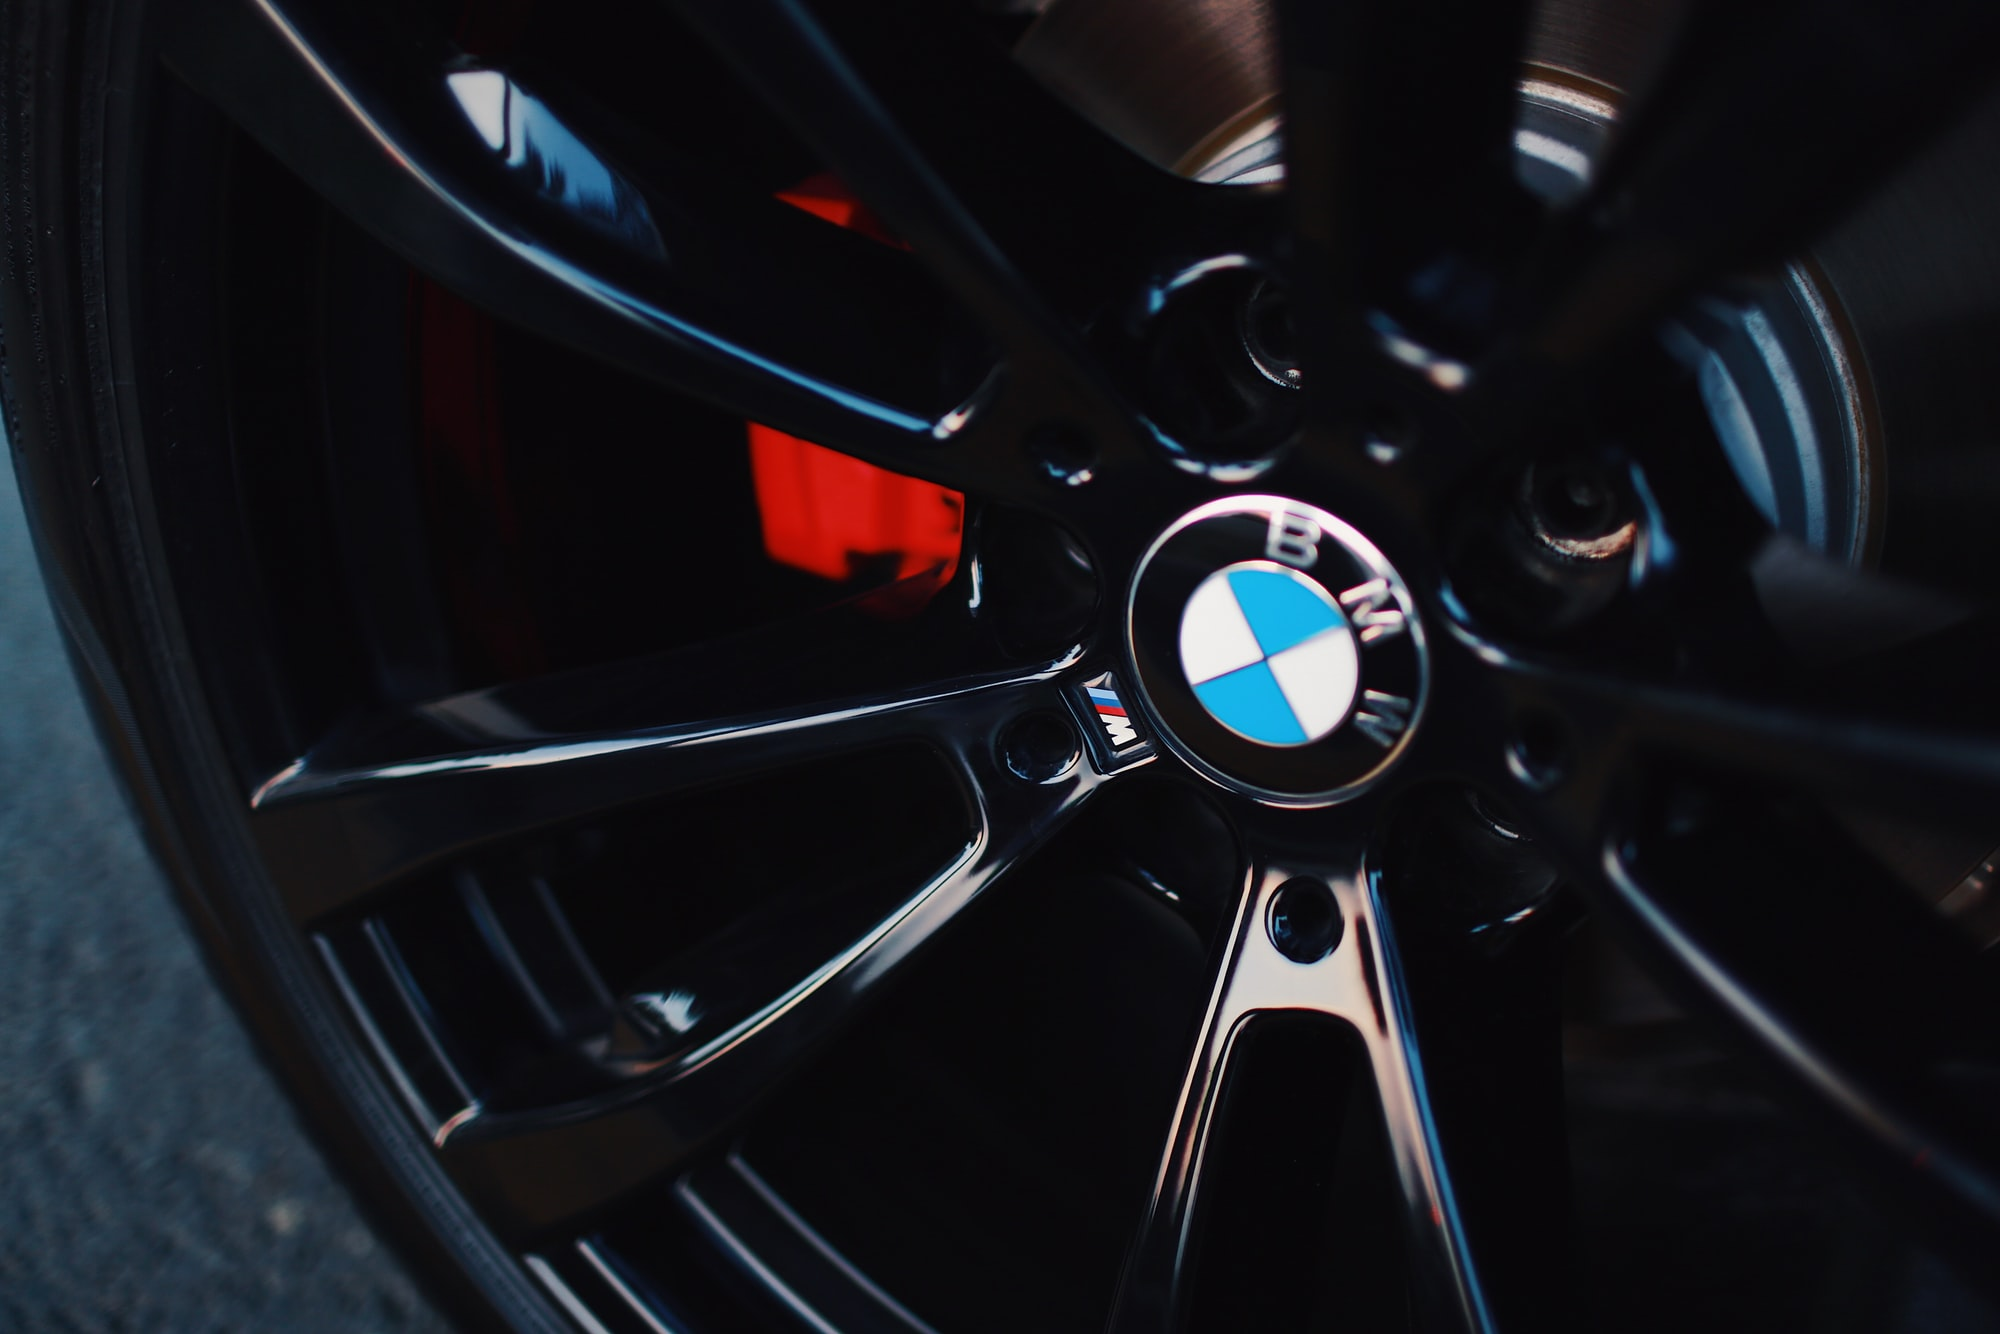 BMW upgrades its smart vehicle capabilities with Tactile Mobility collab